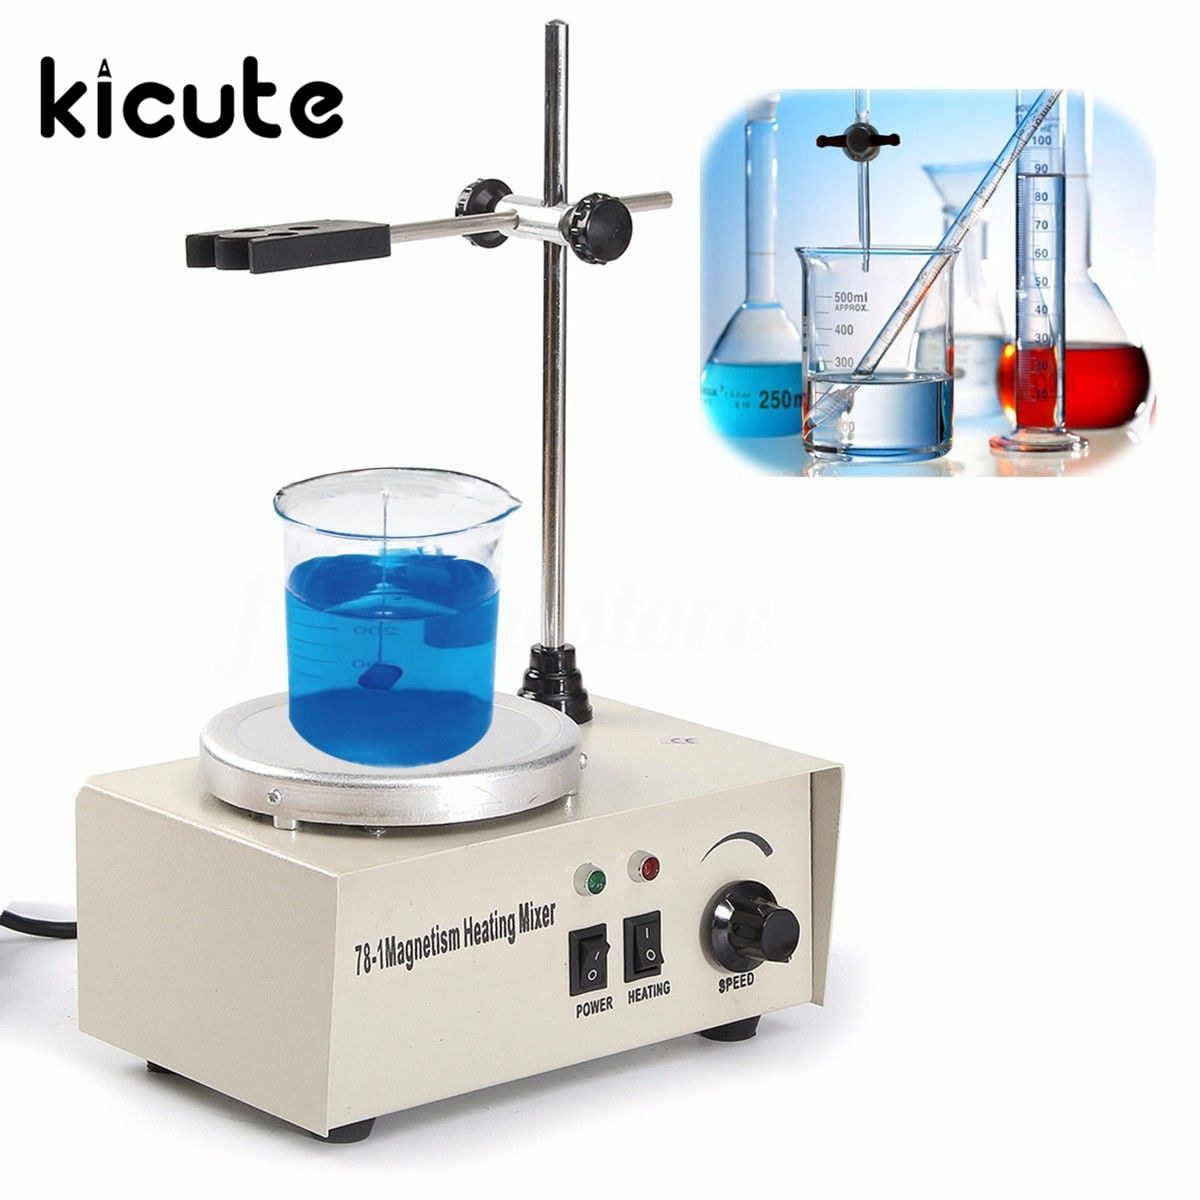 220V 150W 1000ML Magnetic Stirrer Mixer Machine Heating 78-1 Hot Plate Medical Laboratory Tool игрушка для собак dezzie аппорт 25 5 х 7 см